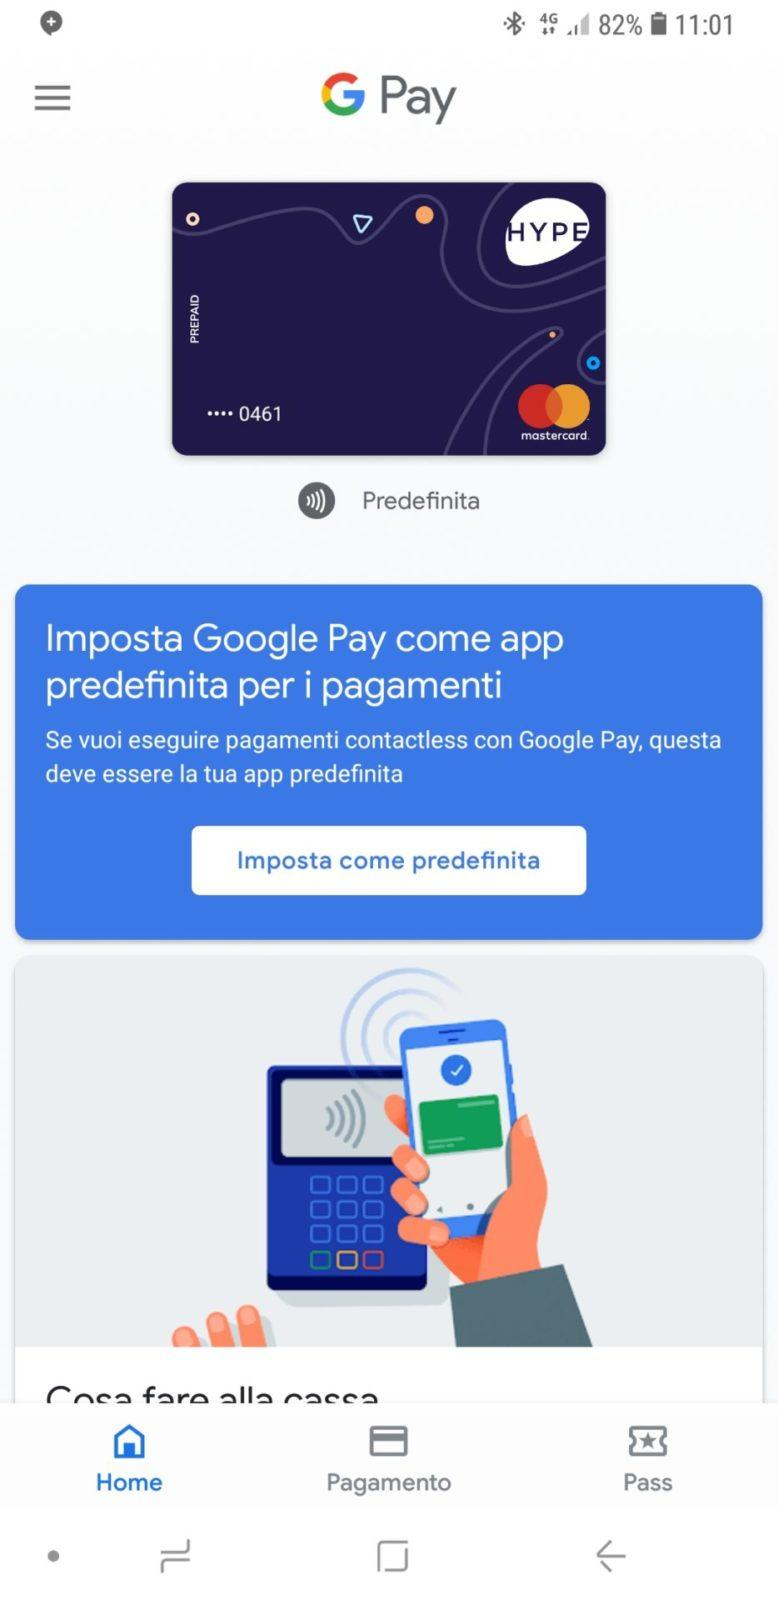 Carta Hype in uso su Google Pay | Evosmart.it